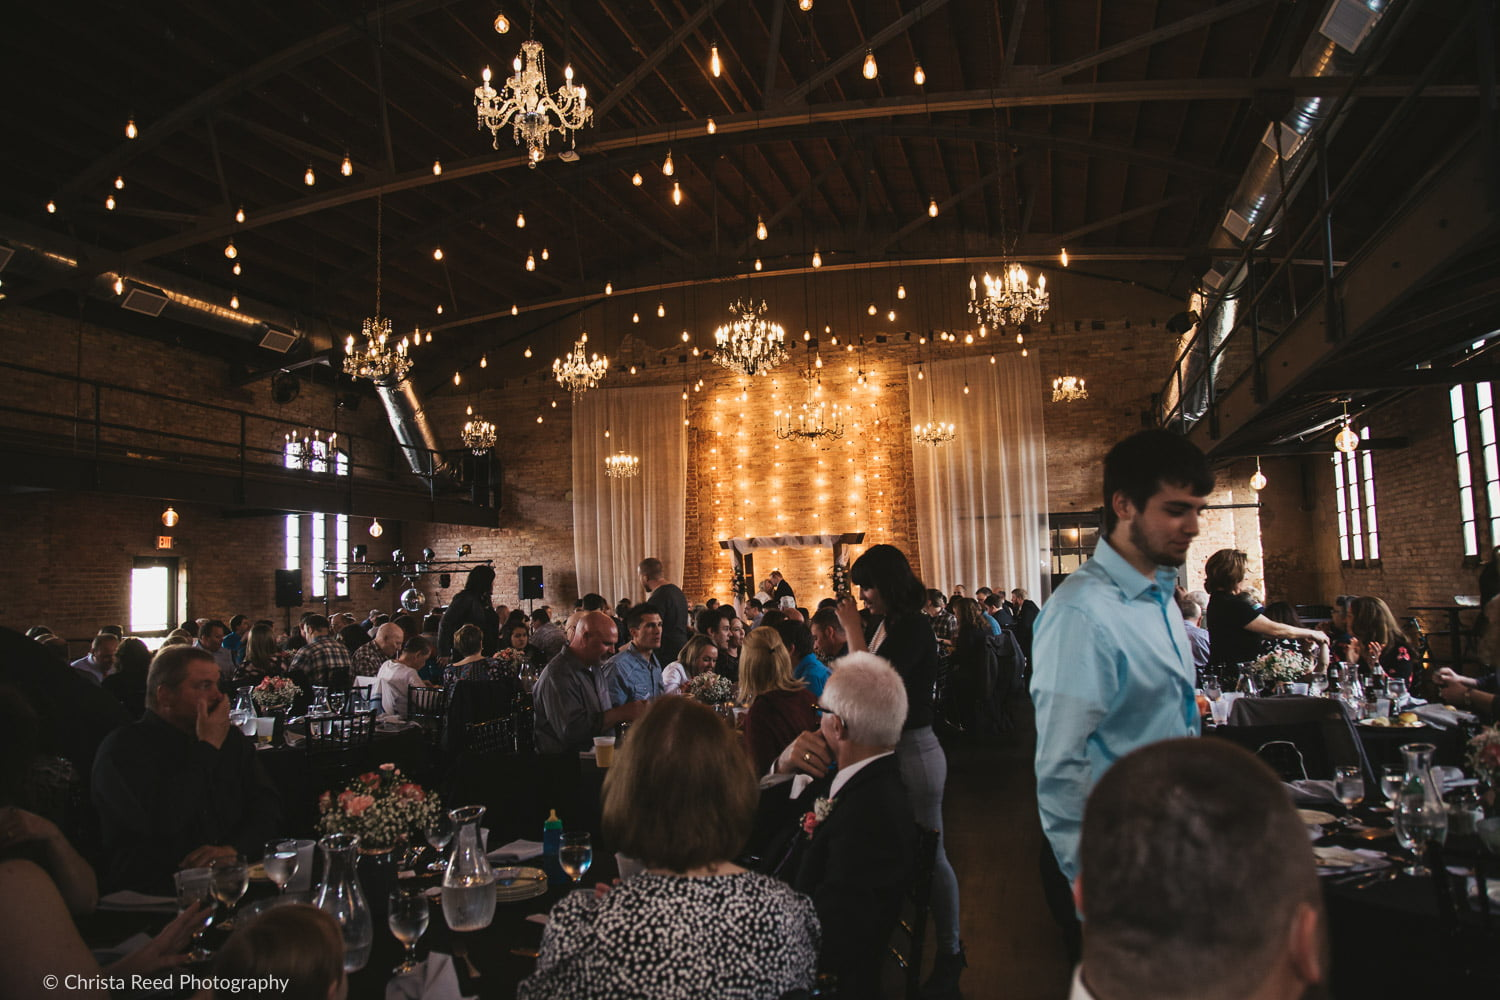 A large wedding reception at the Capitol Room